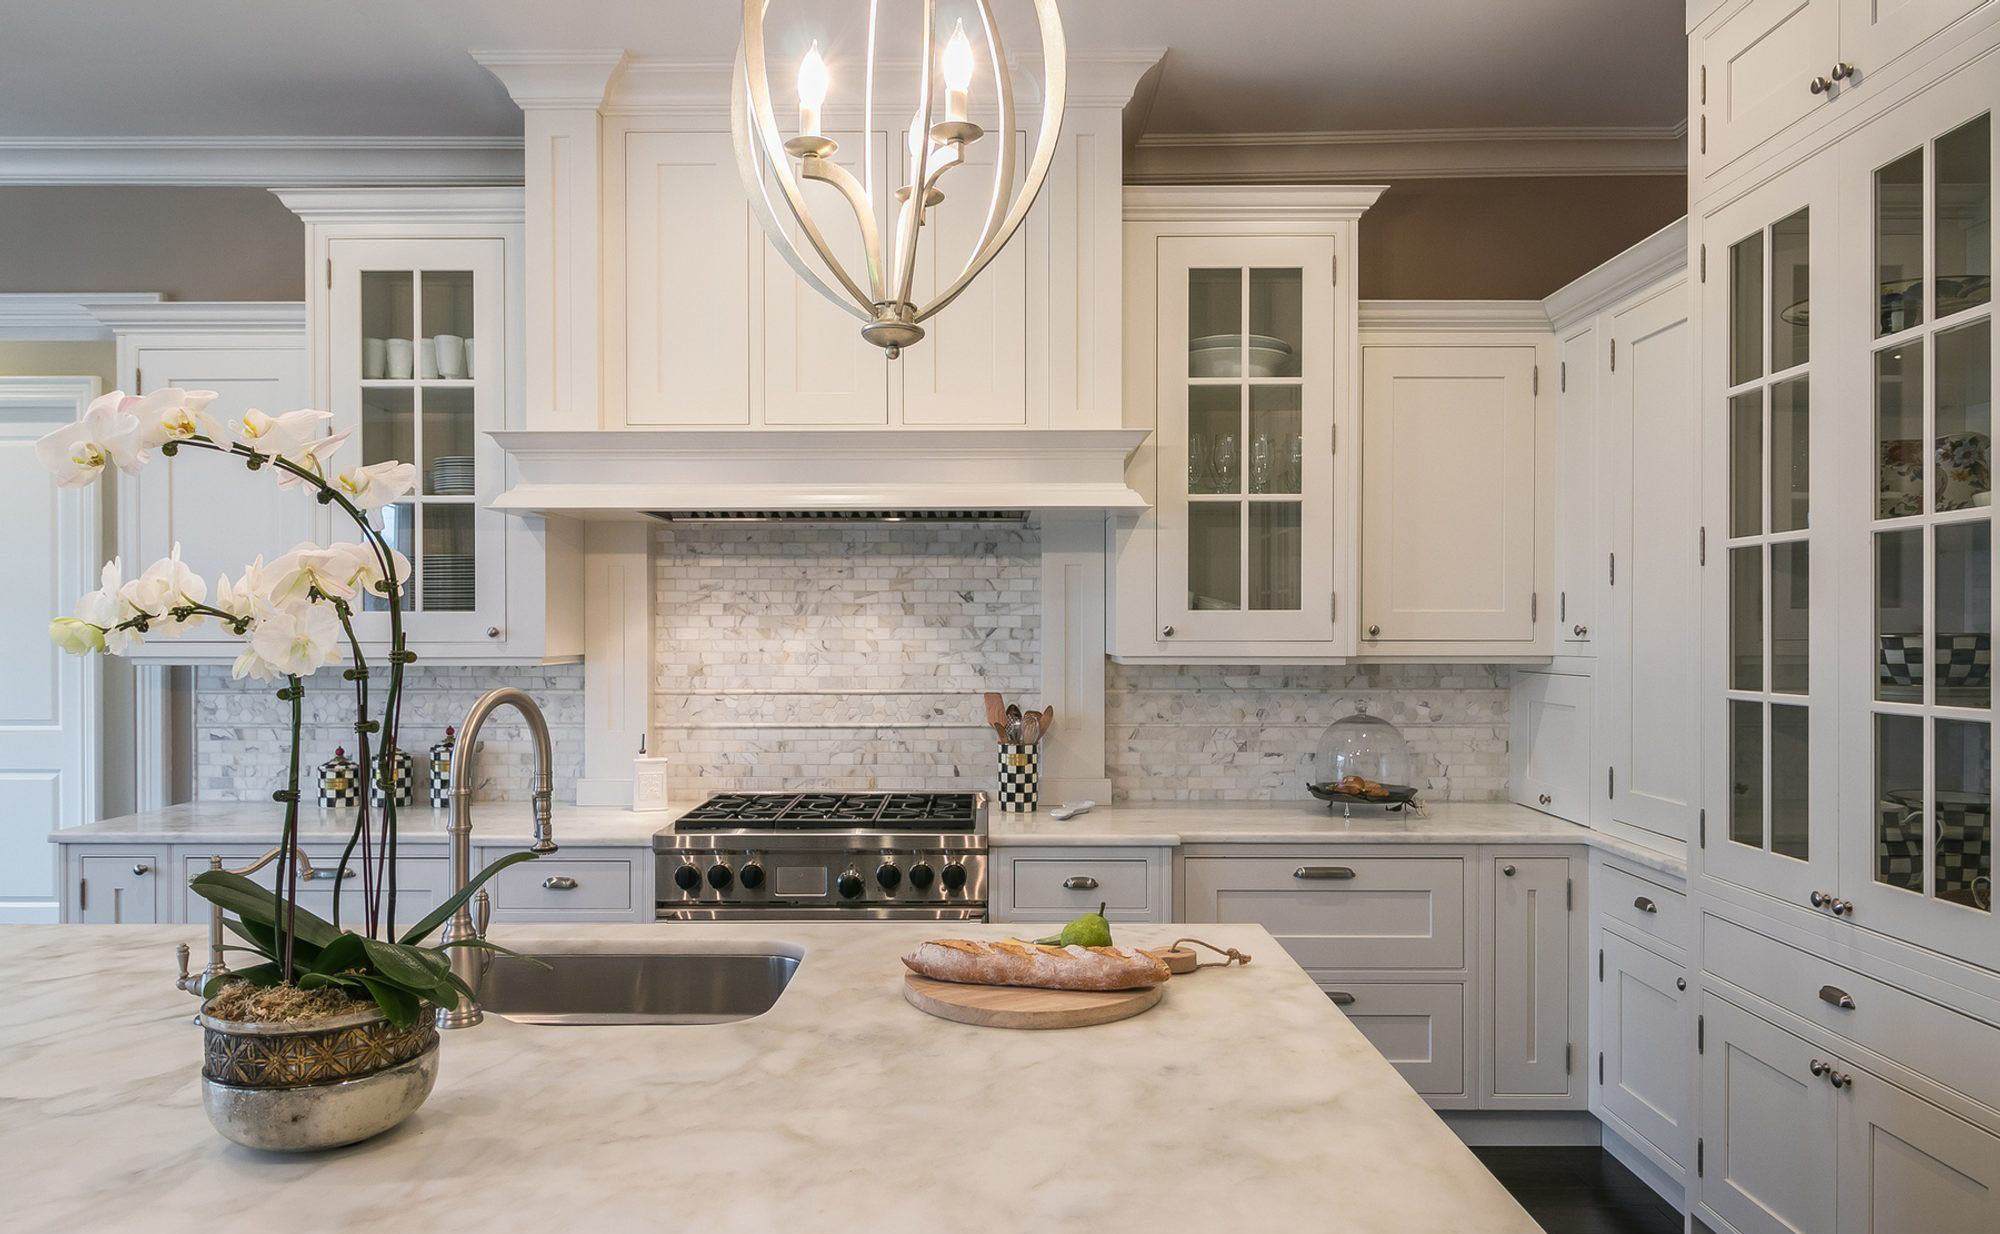 Beautiful luxury kitchen with marble countertops and backsplash with medium gray grout.